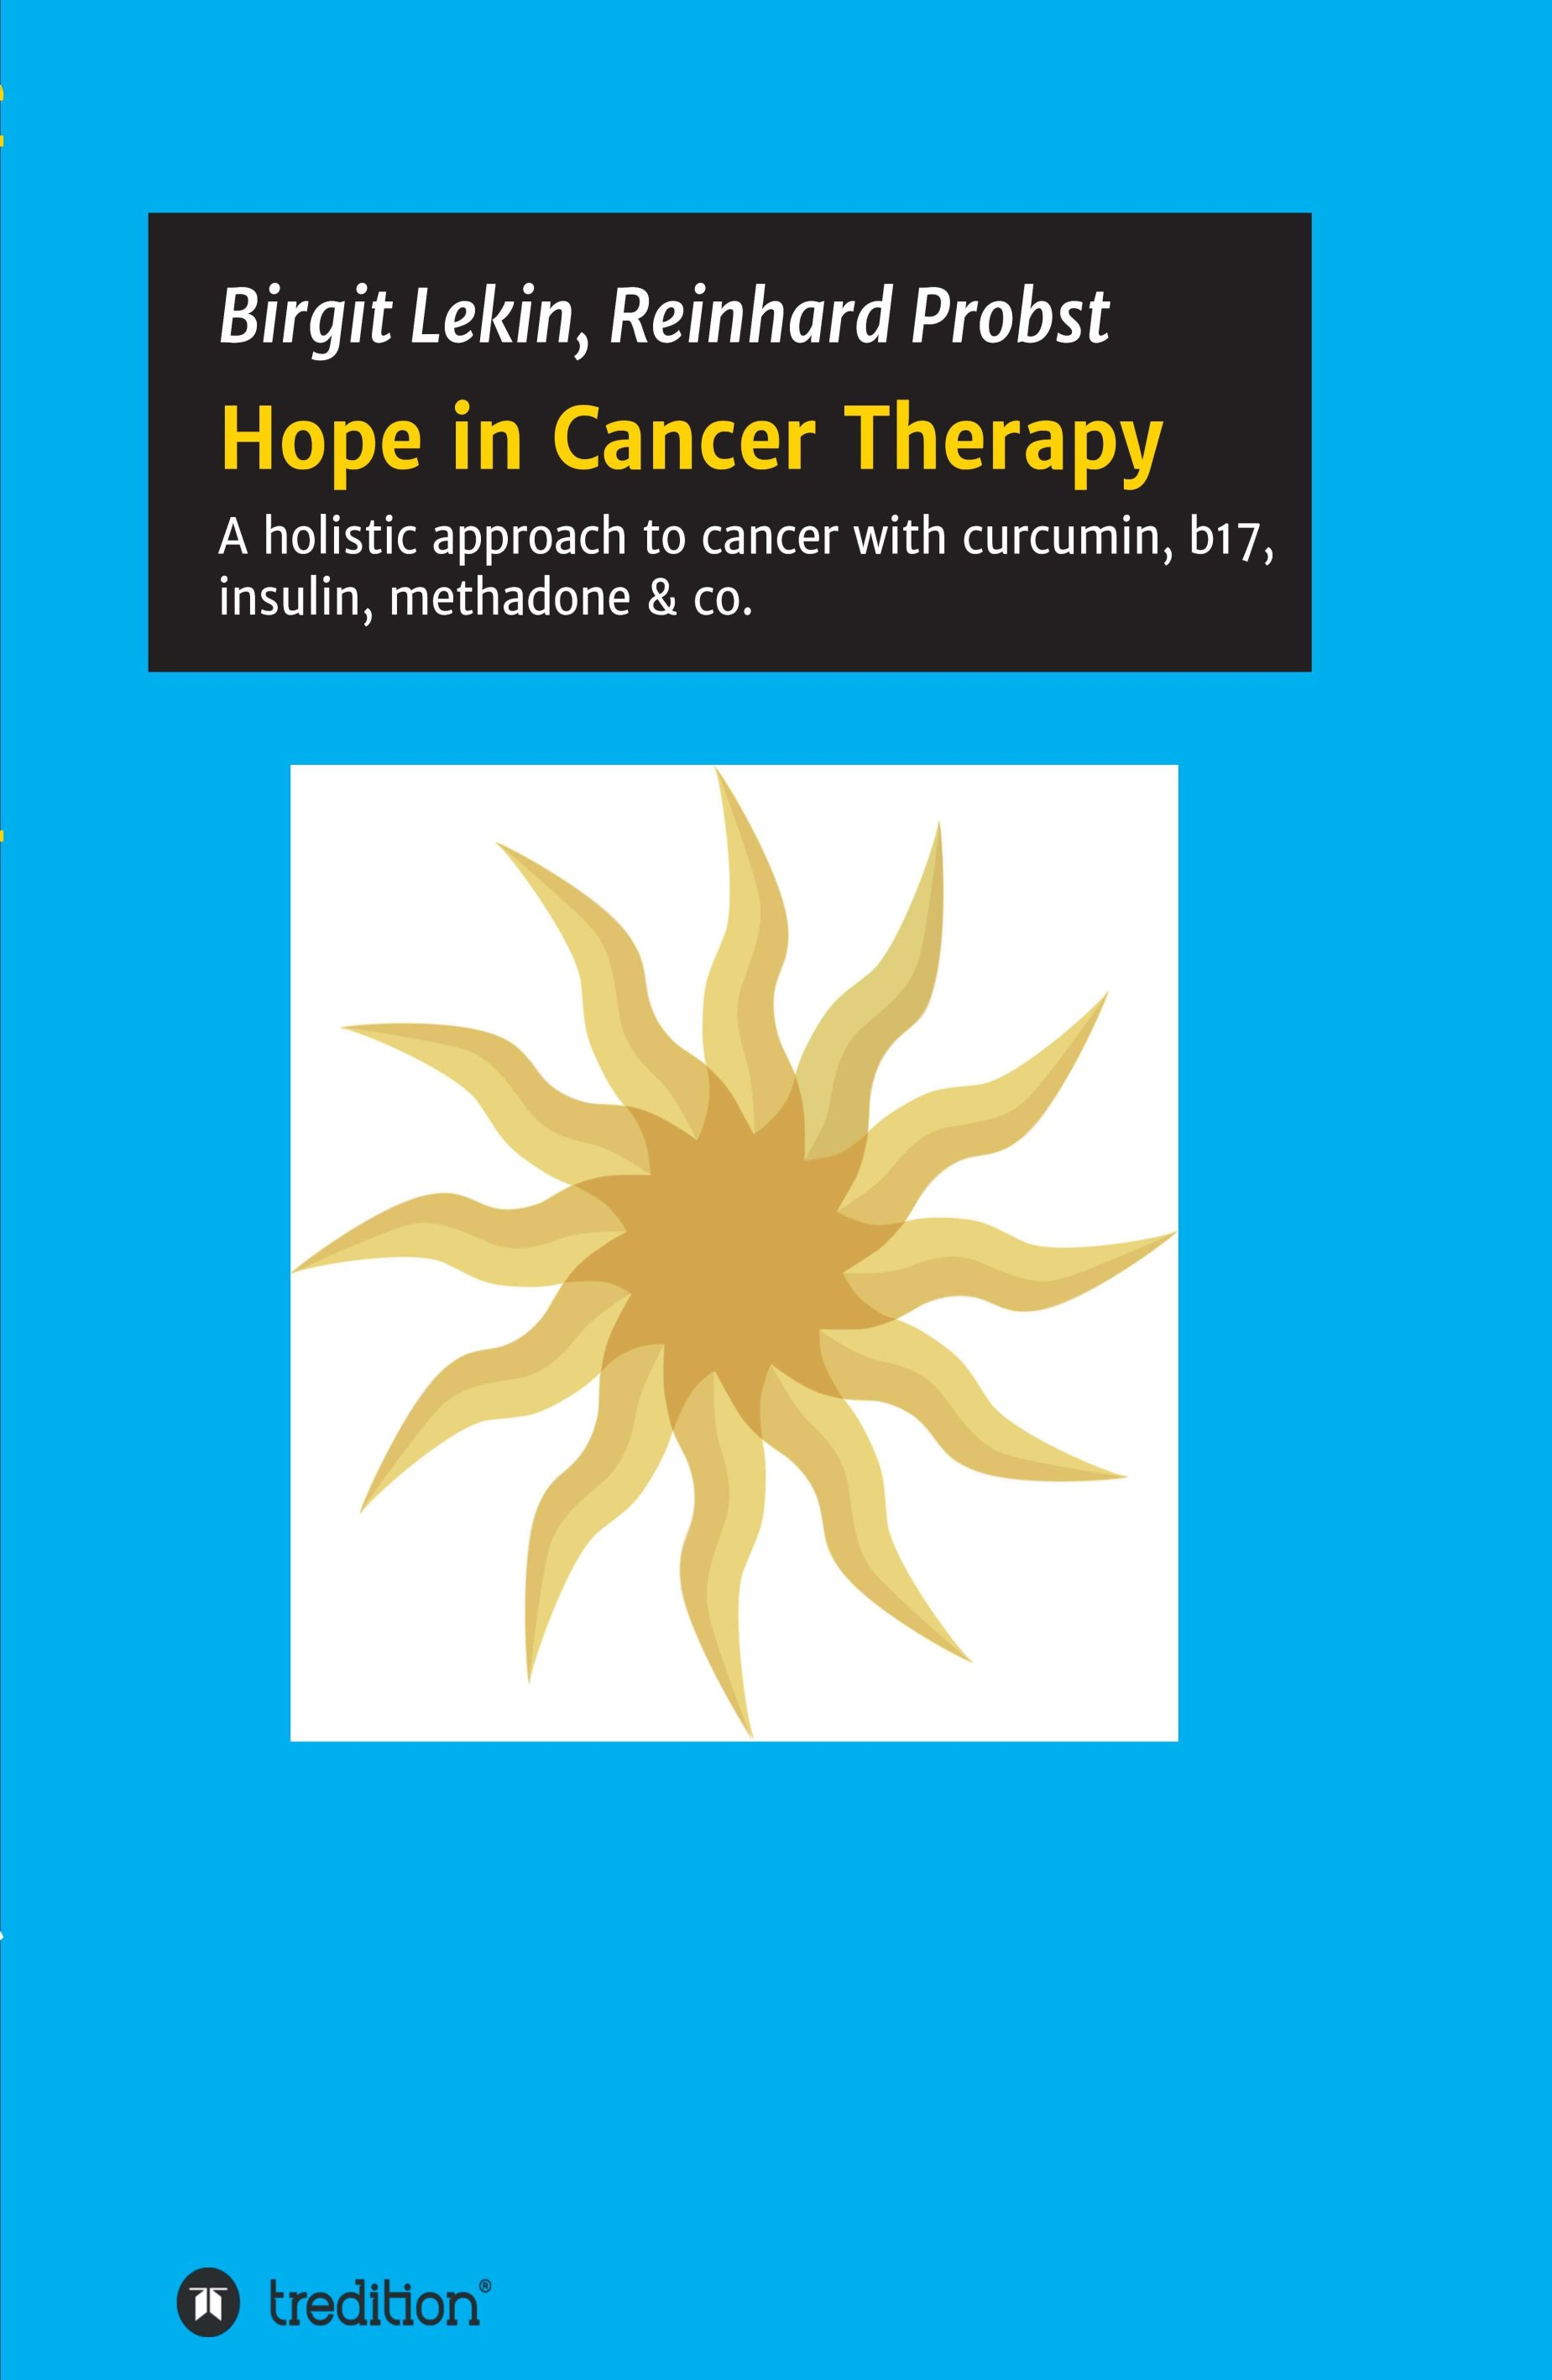 Hope in Cancer Therapy - A holistic approach to cancer